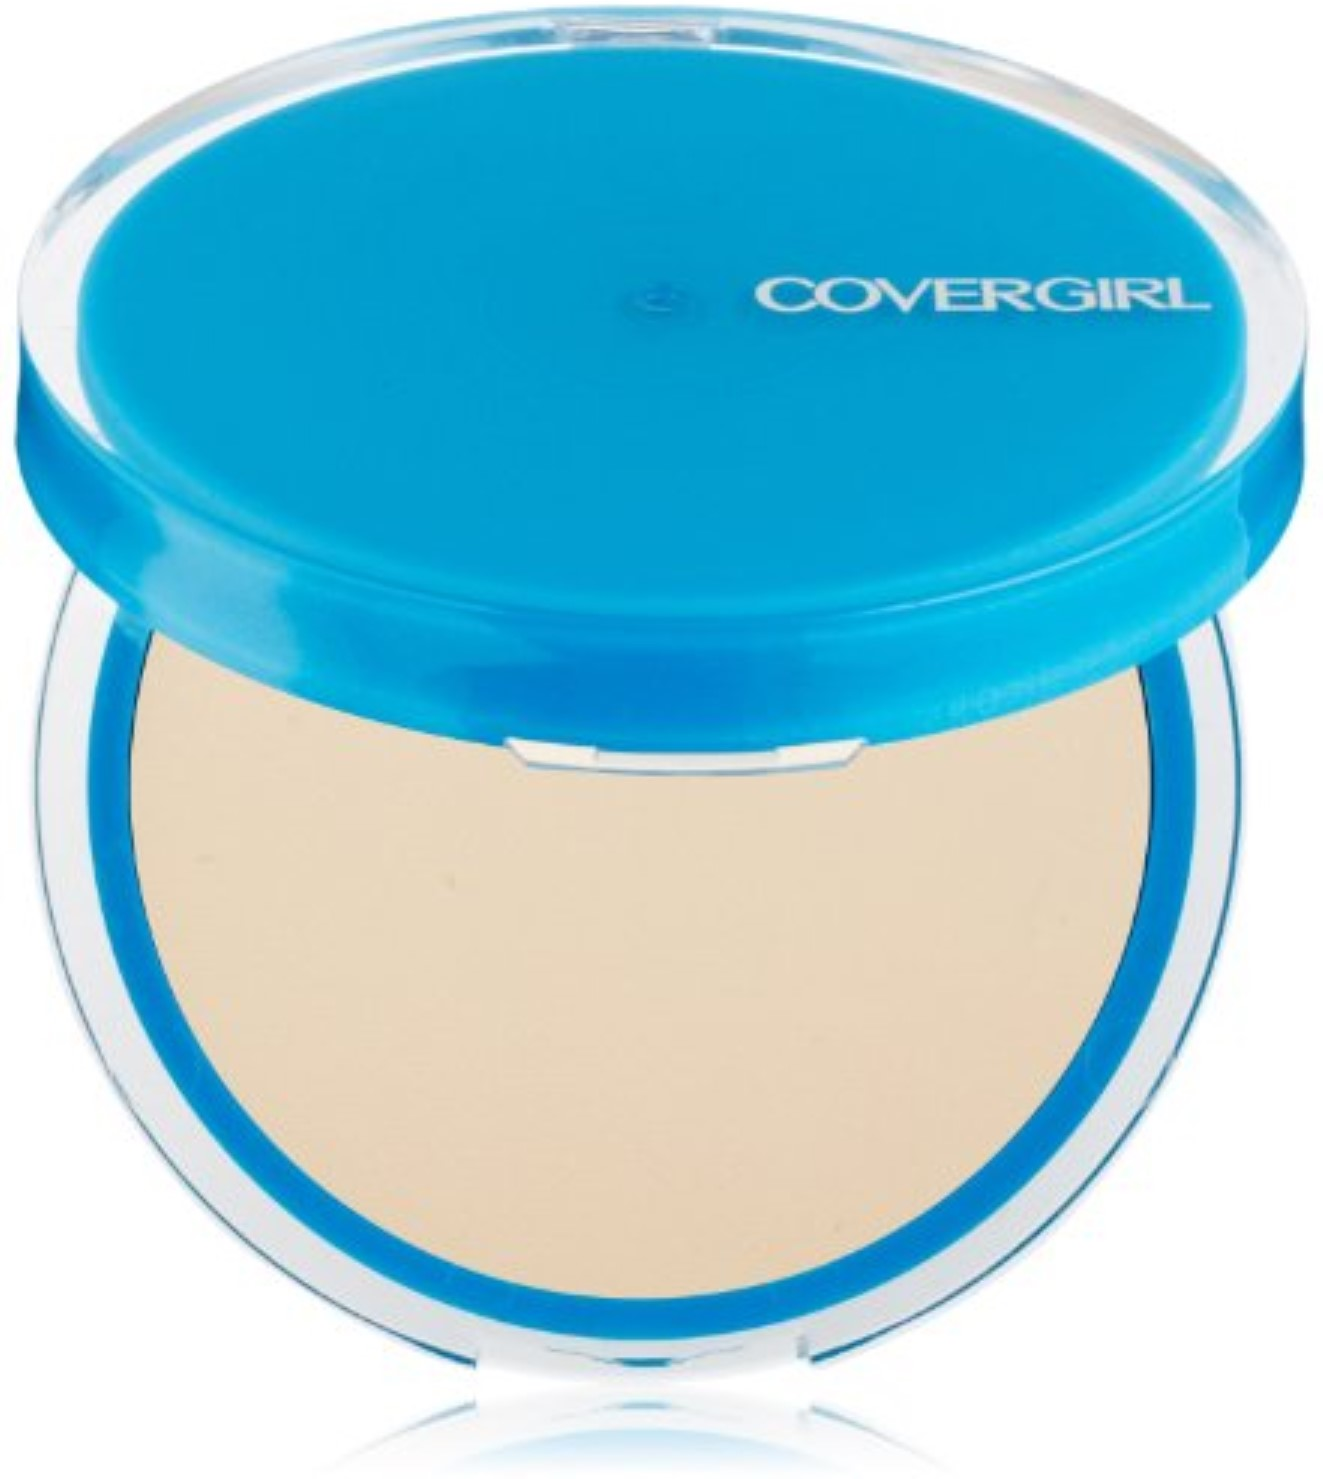 CoverGirl Oil Control Compact Pressed Powder, Buff Beige [525], 0.35 oz (Pack of 2)